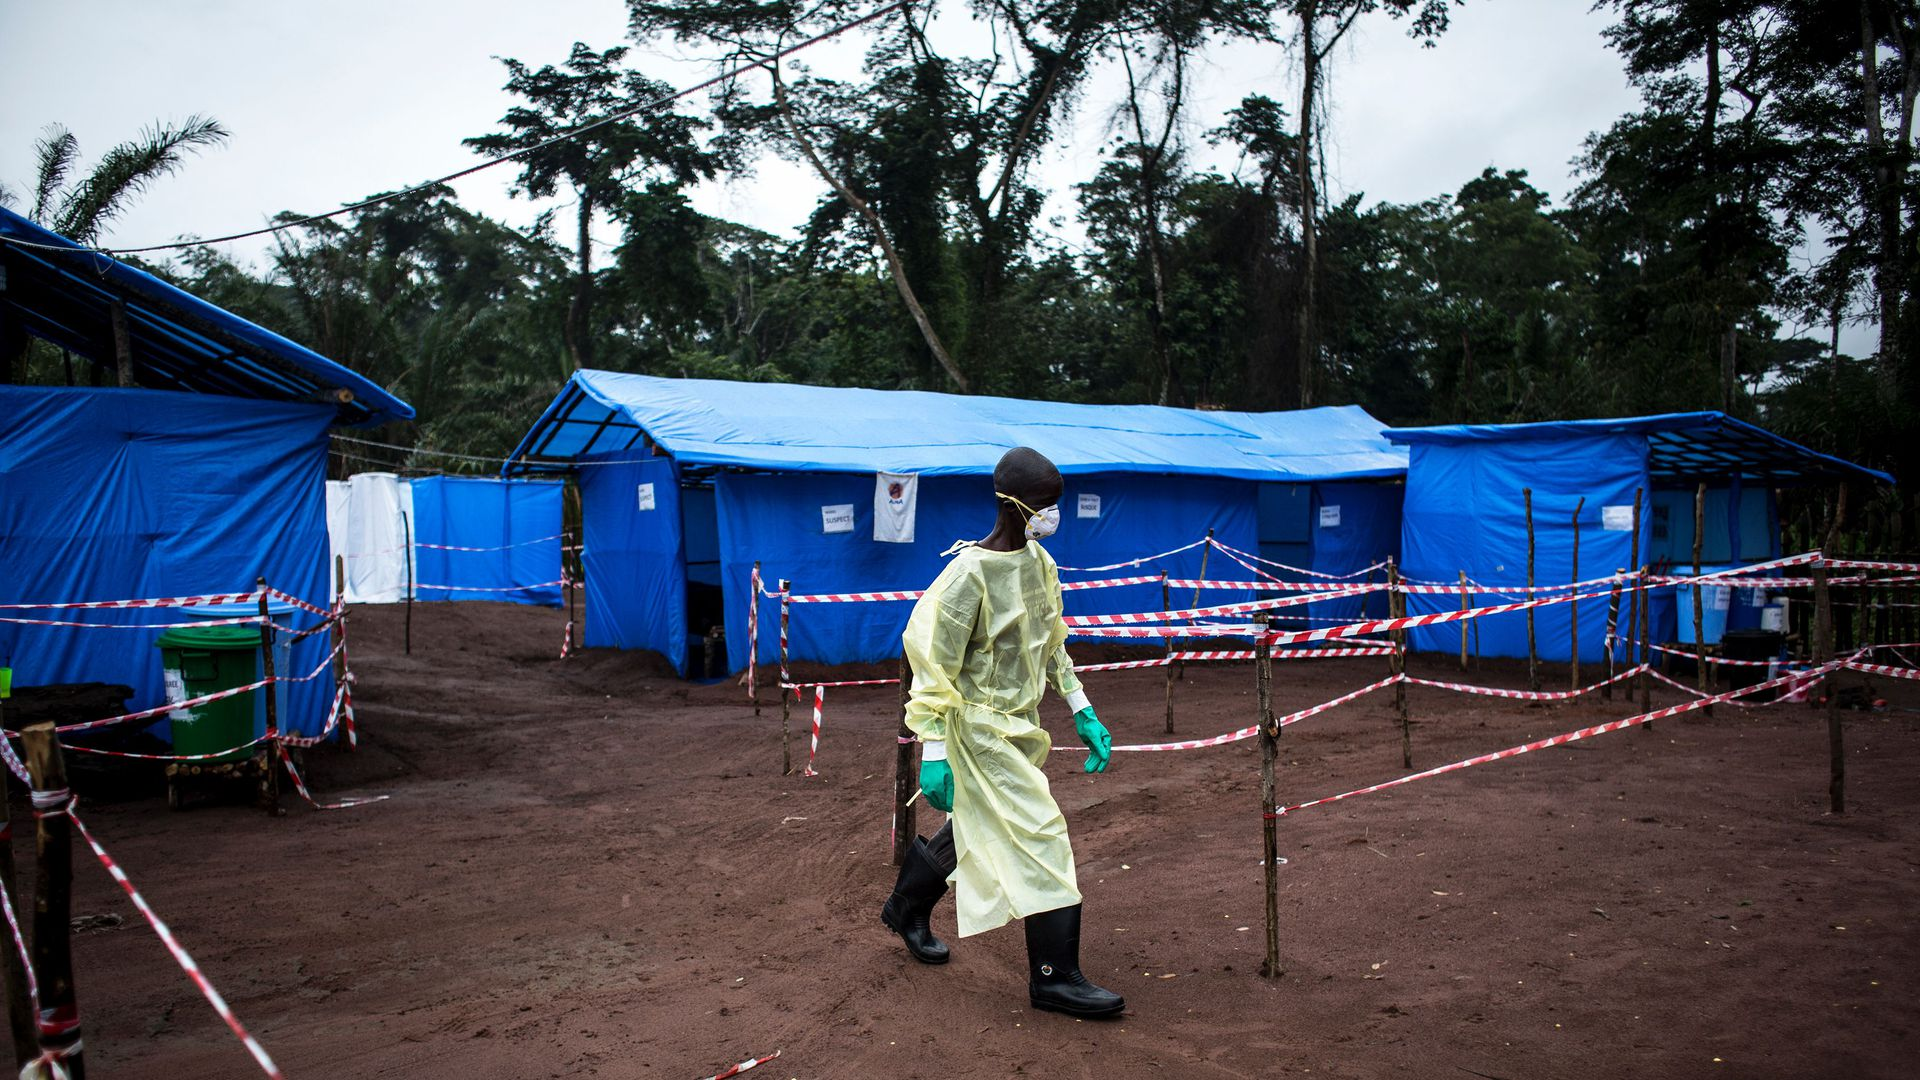 A health worker at Ebola quarantine in 2017. Photo: John Wessels/AFP/Getty Images